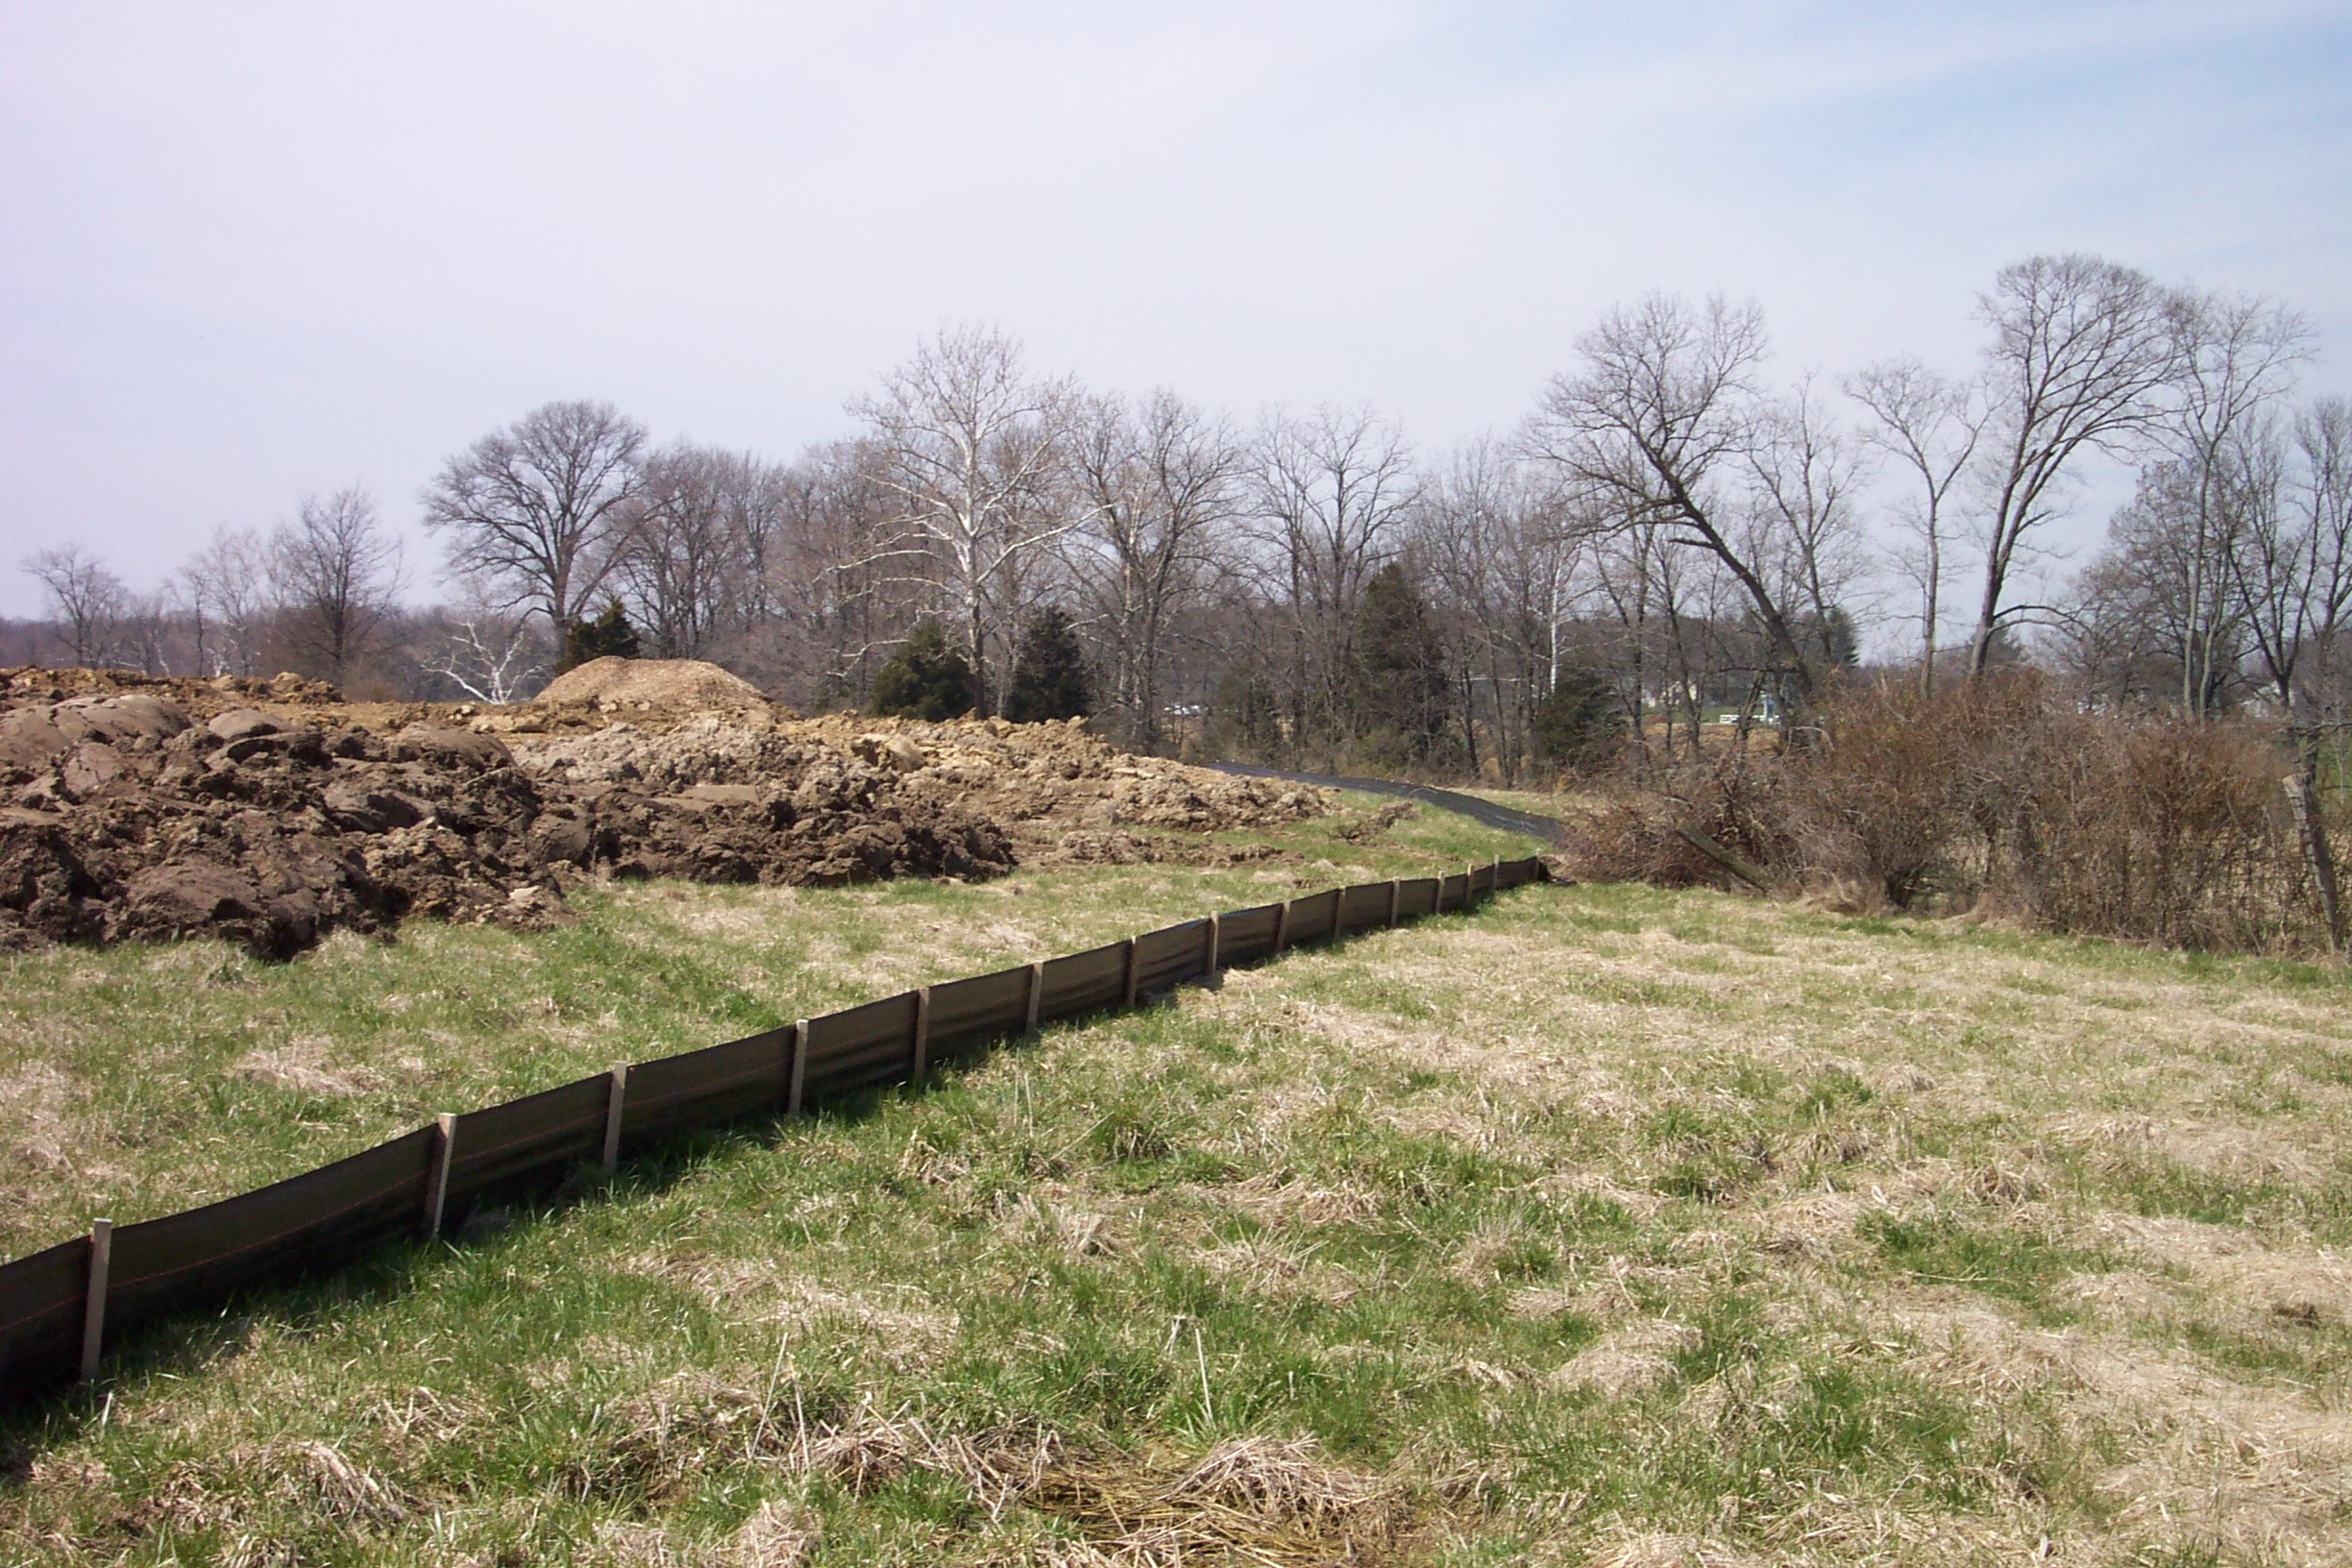 Plastic fencing to control soil erosion and stormwater runoff at a construction site.